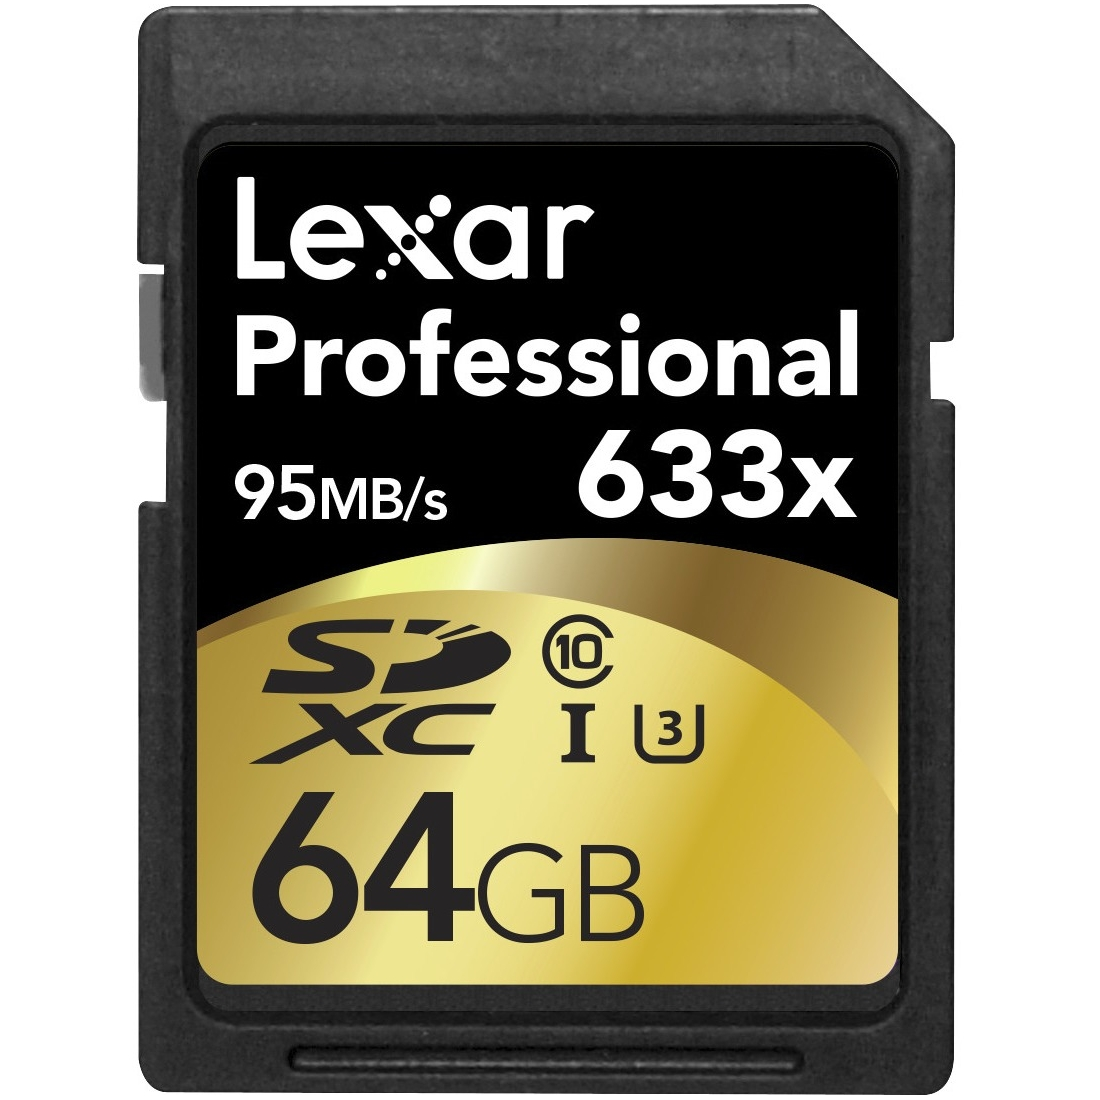 Lexar Professional 64 Gb Secure Digital Extended Capacity [sdxc] - Class 10/uhs-i [u3] - 95 Mbps Read - 45 Mbps Write - 633x Memory Speed (lsd64gcbnl633)